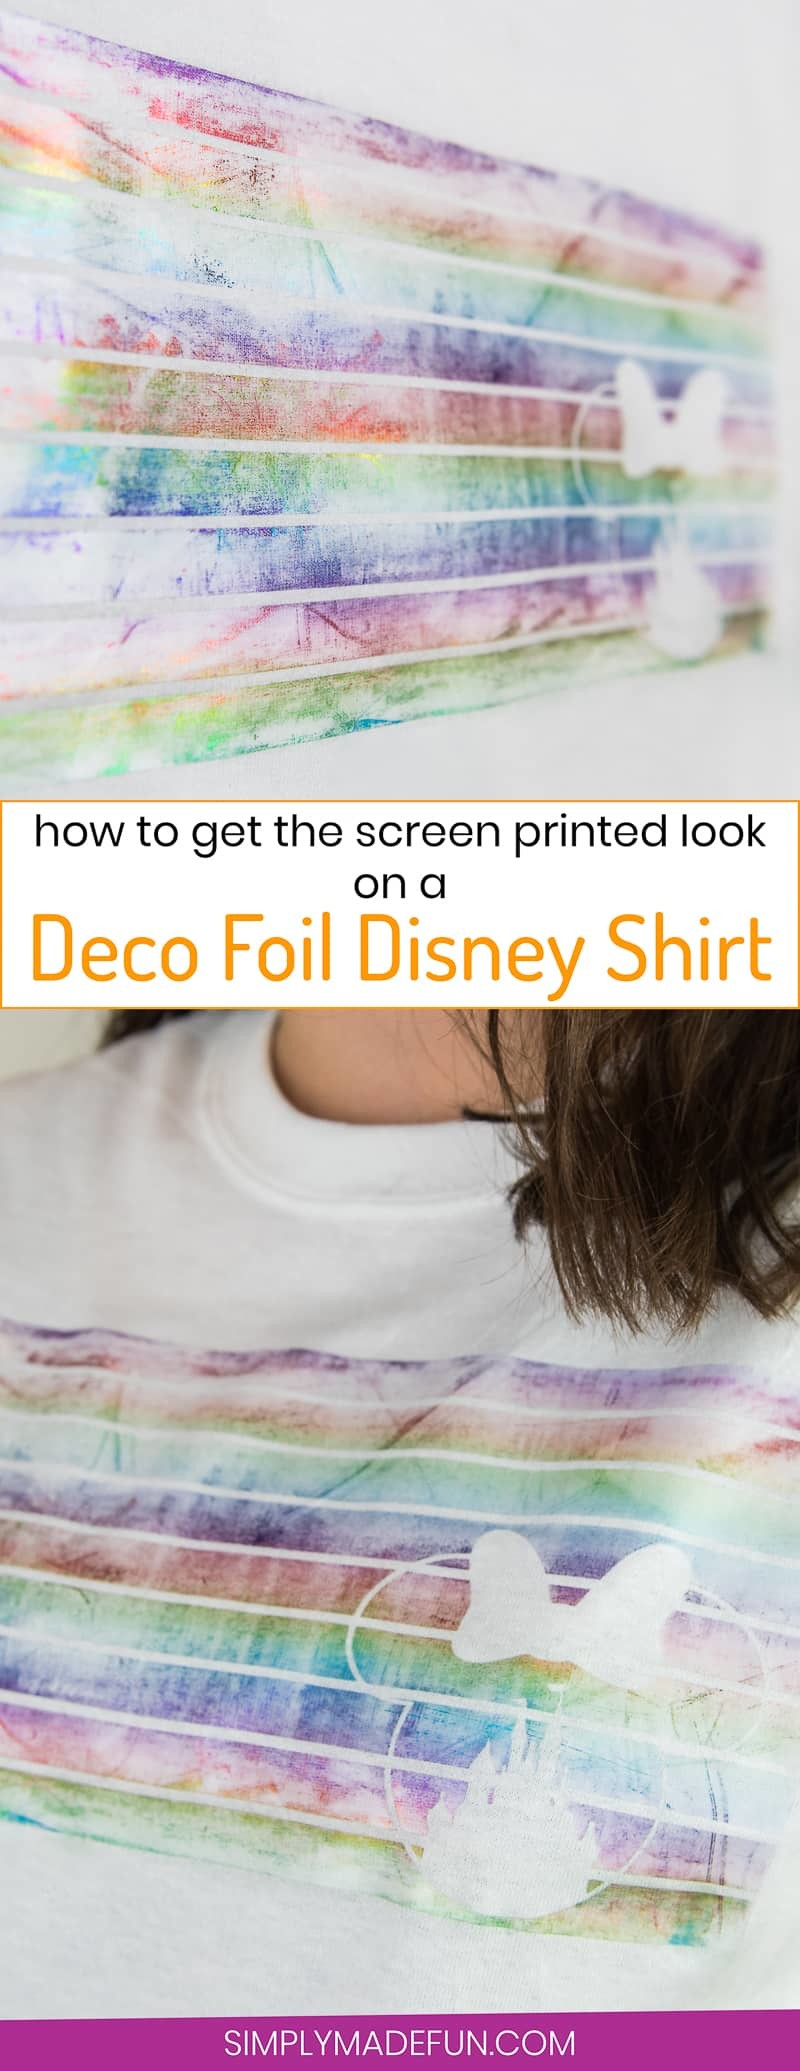 Deco Foil Disney Shirt - Use Deco Foil from Expressions Vinyl to create a screen printed look to your fabric with heat transfer vinyl! It's such an easy, quick, and colorful DIY and gives your fabric a screen printed look, even though you're using vinyl.